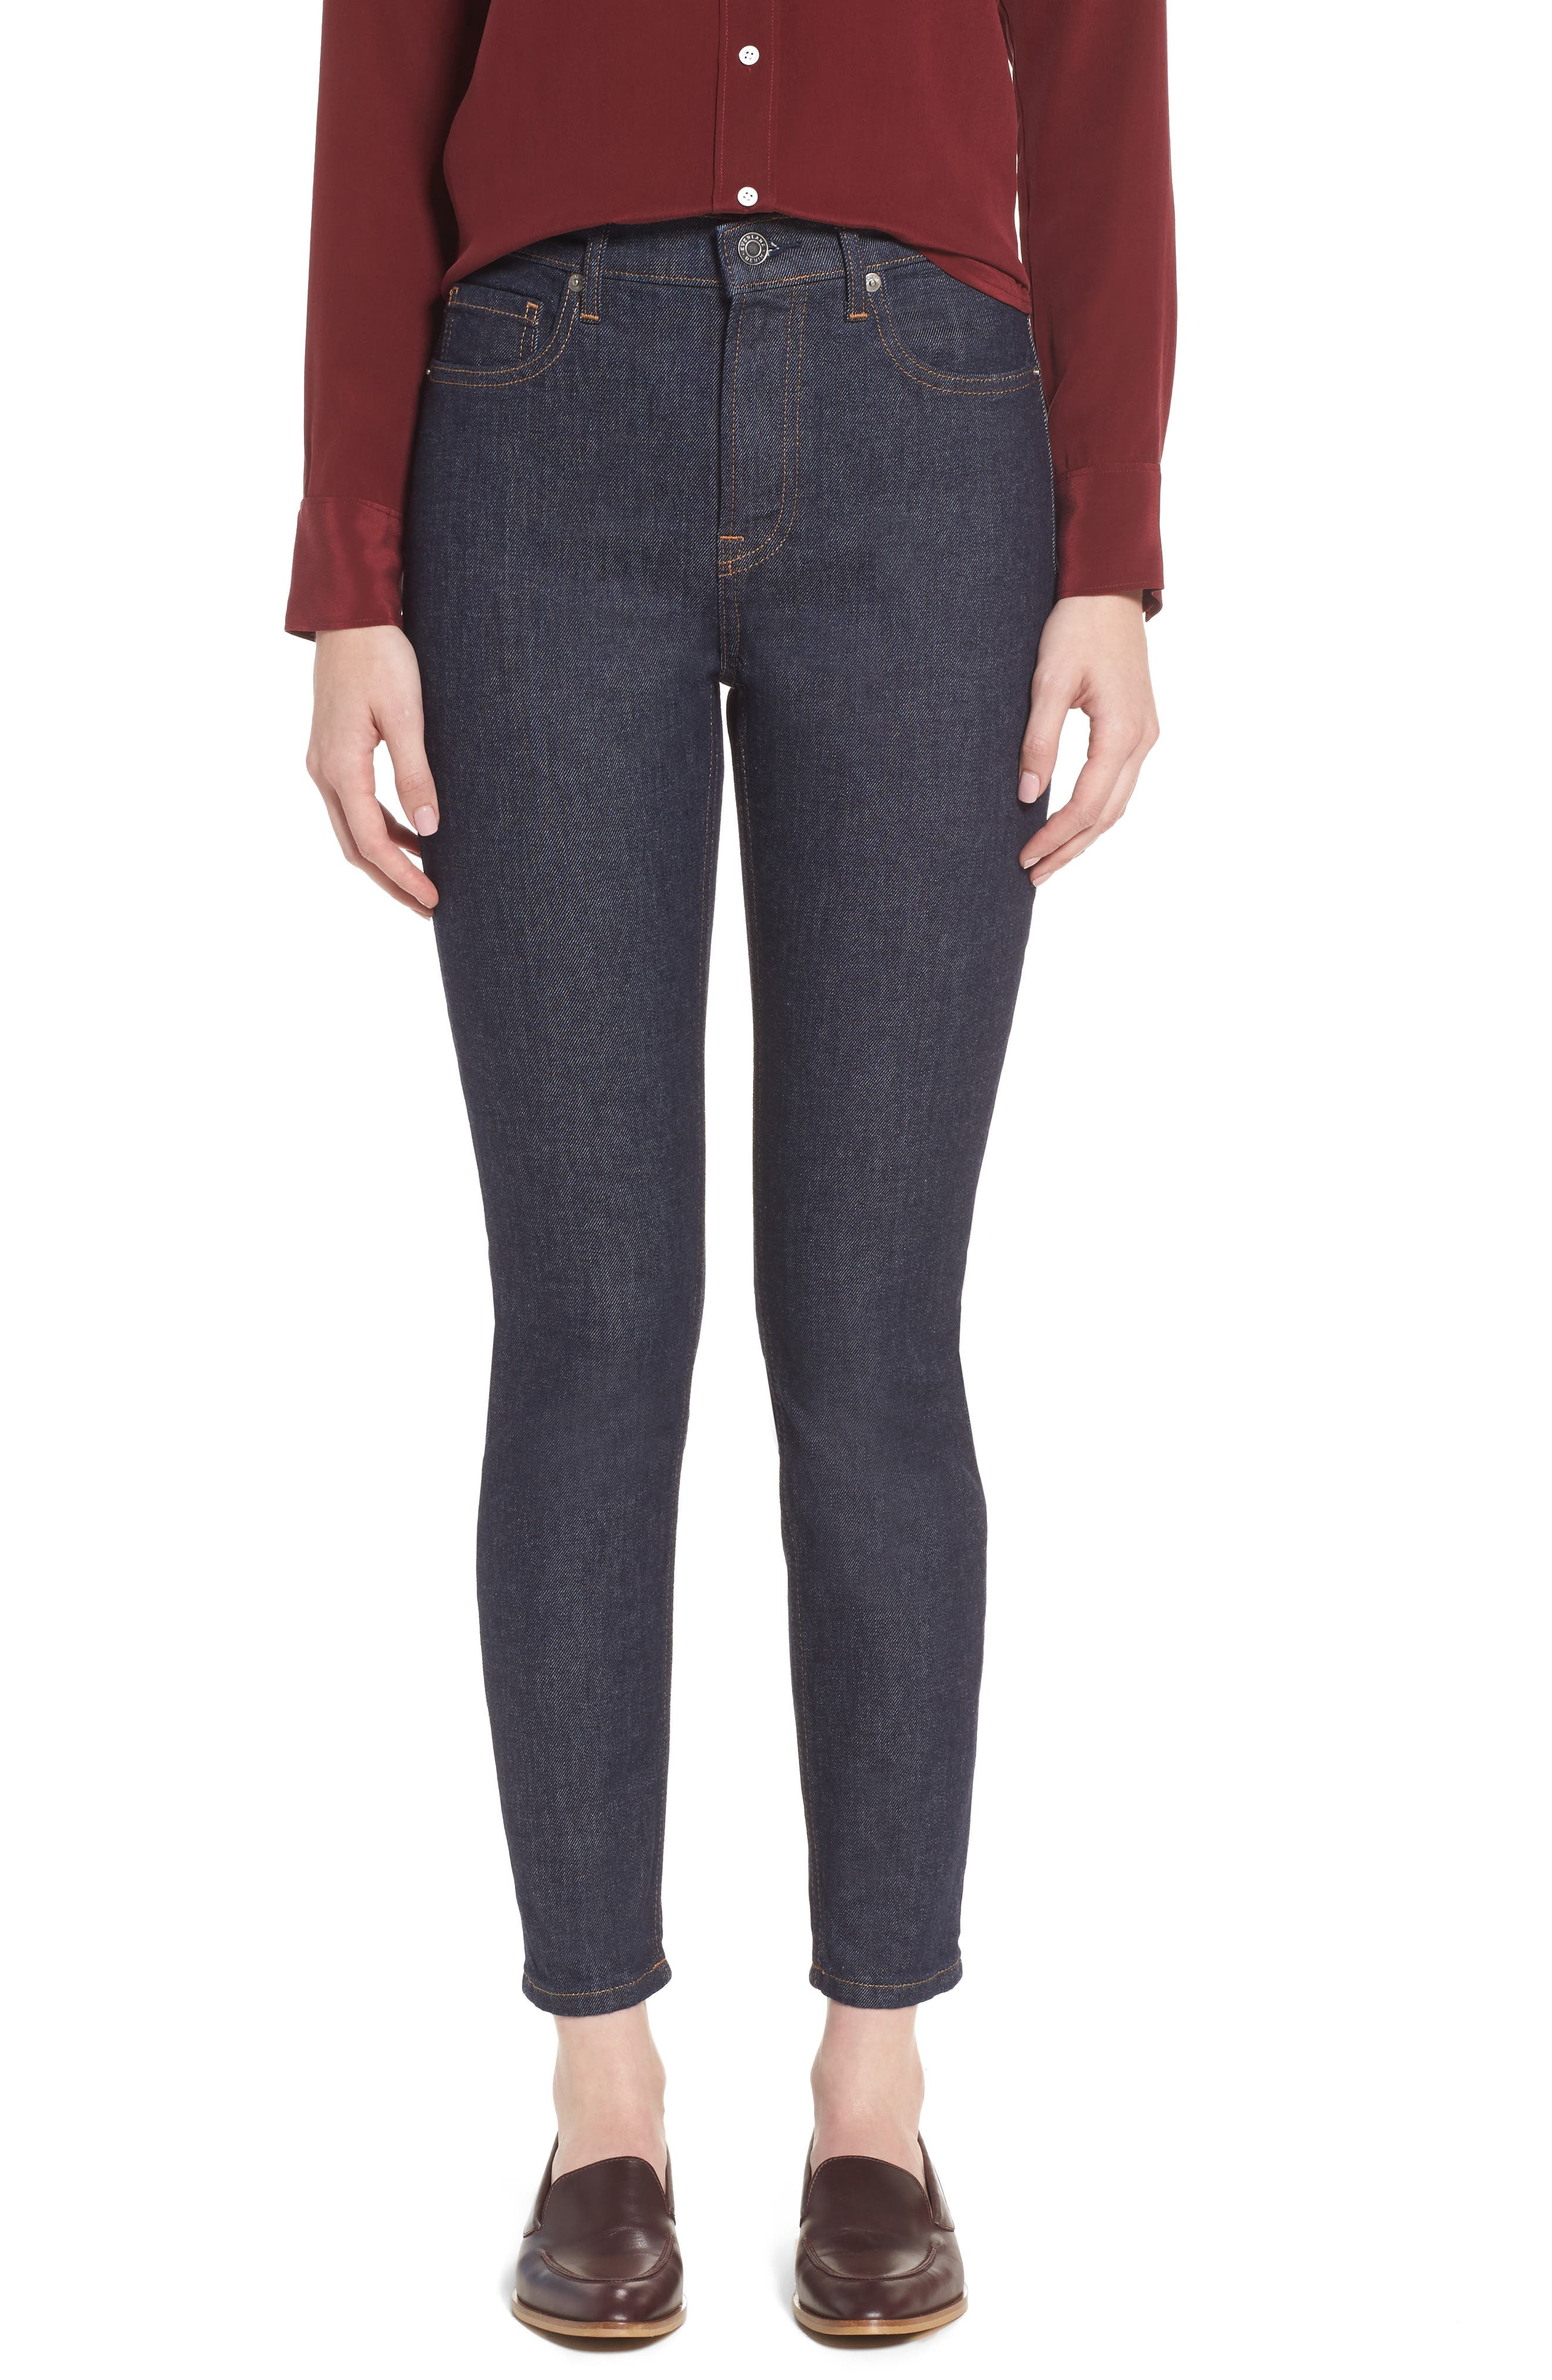 Main Image - Everlane The High Rise Skinny Jeans